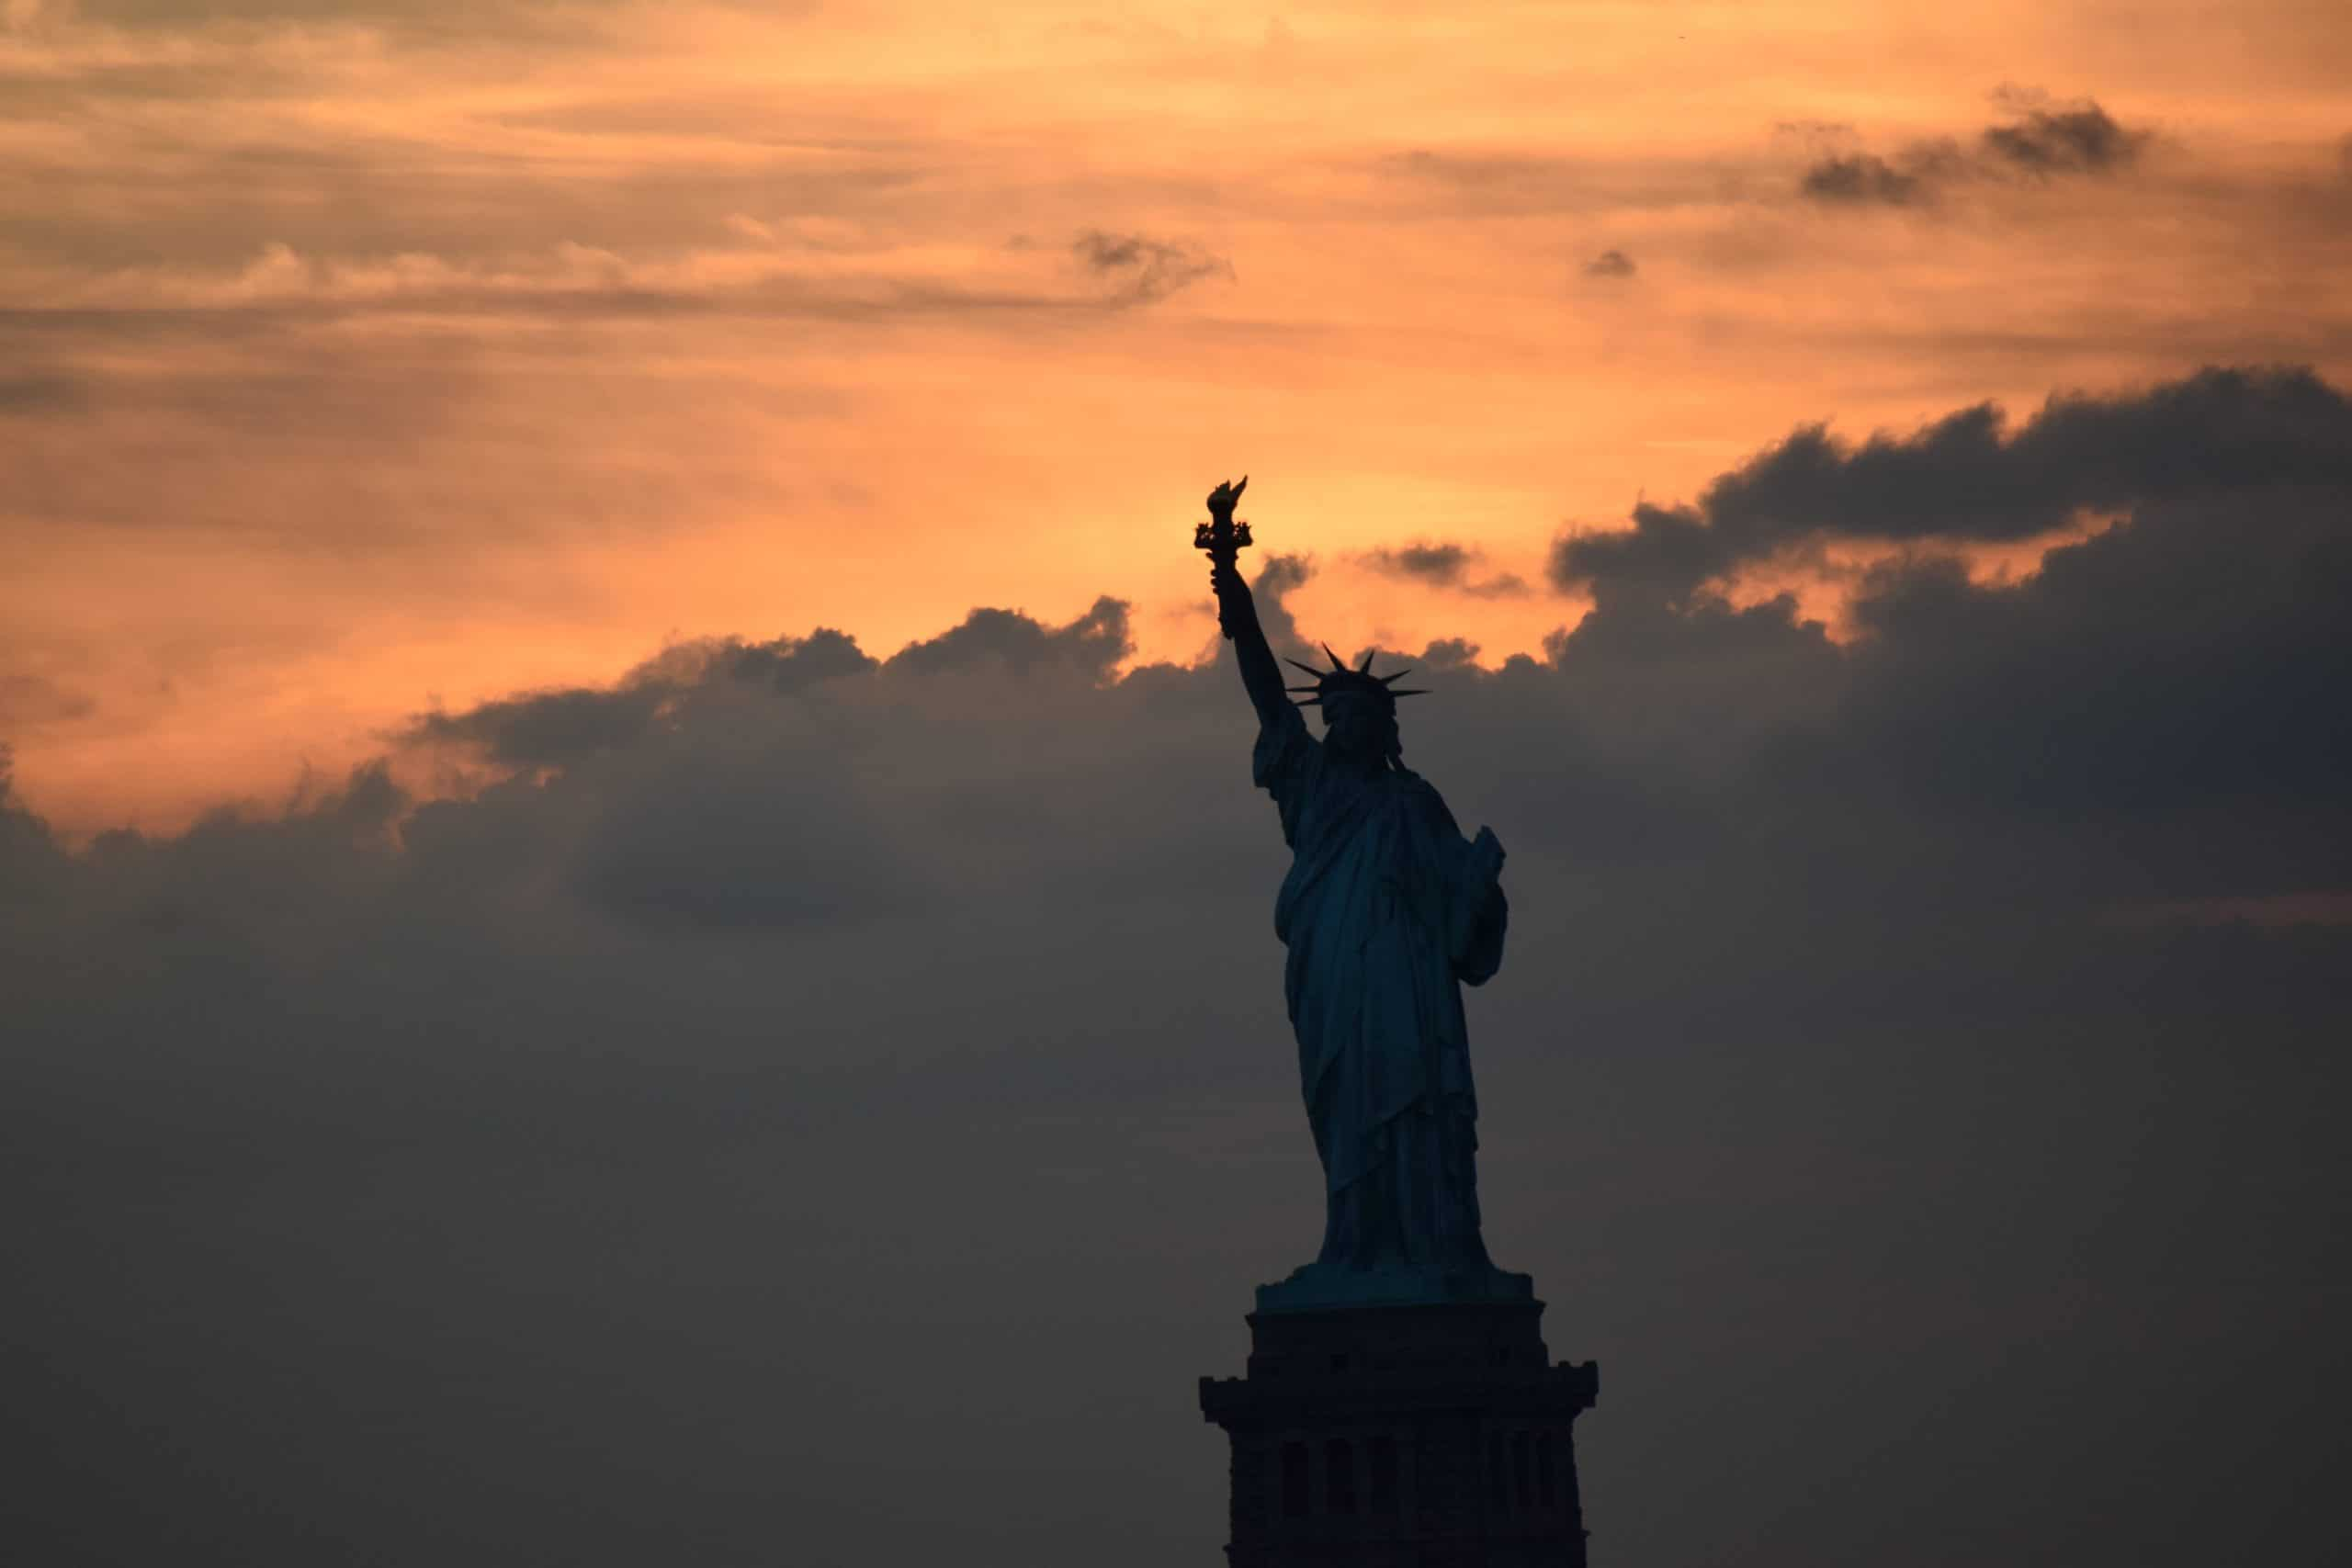 Travel Destination To NYC: Places To Go